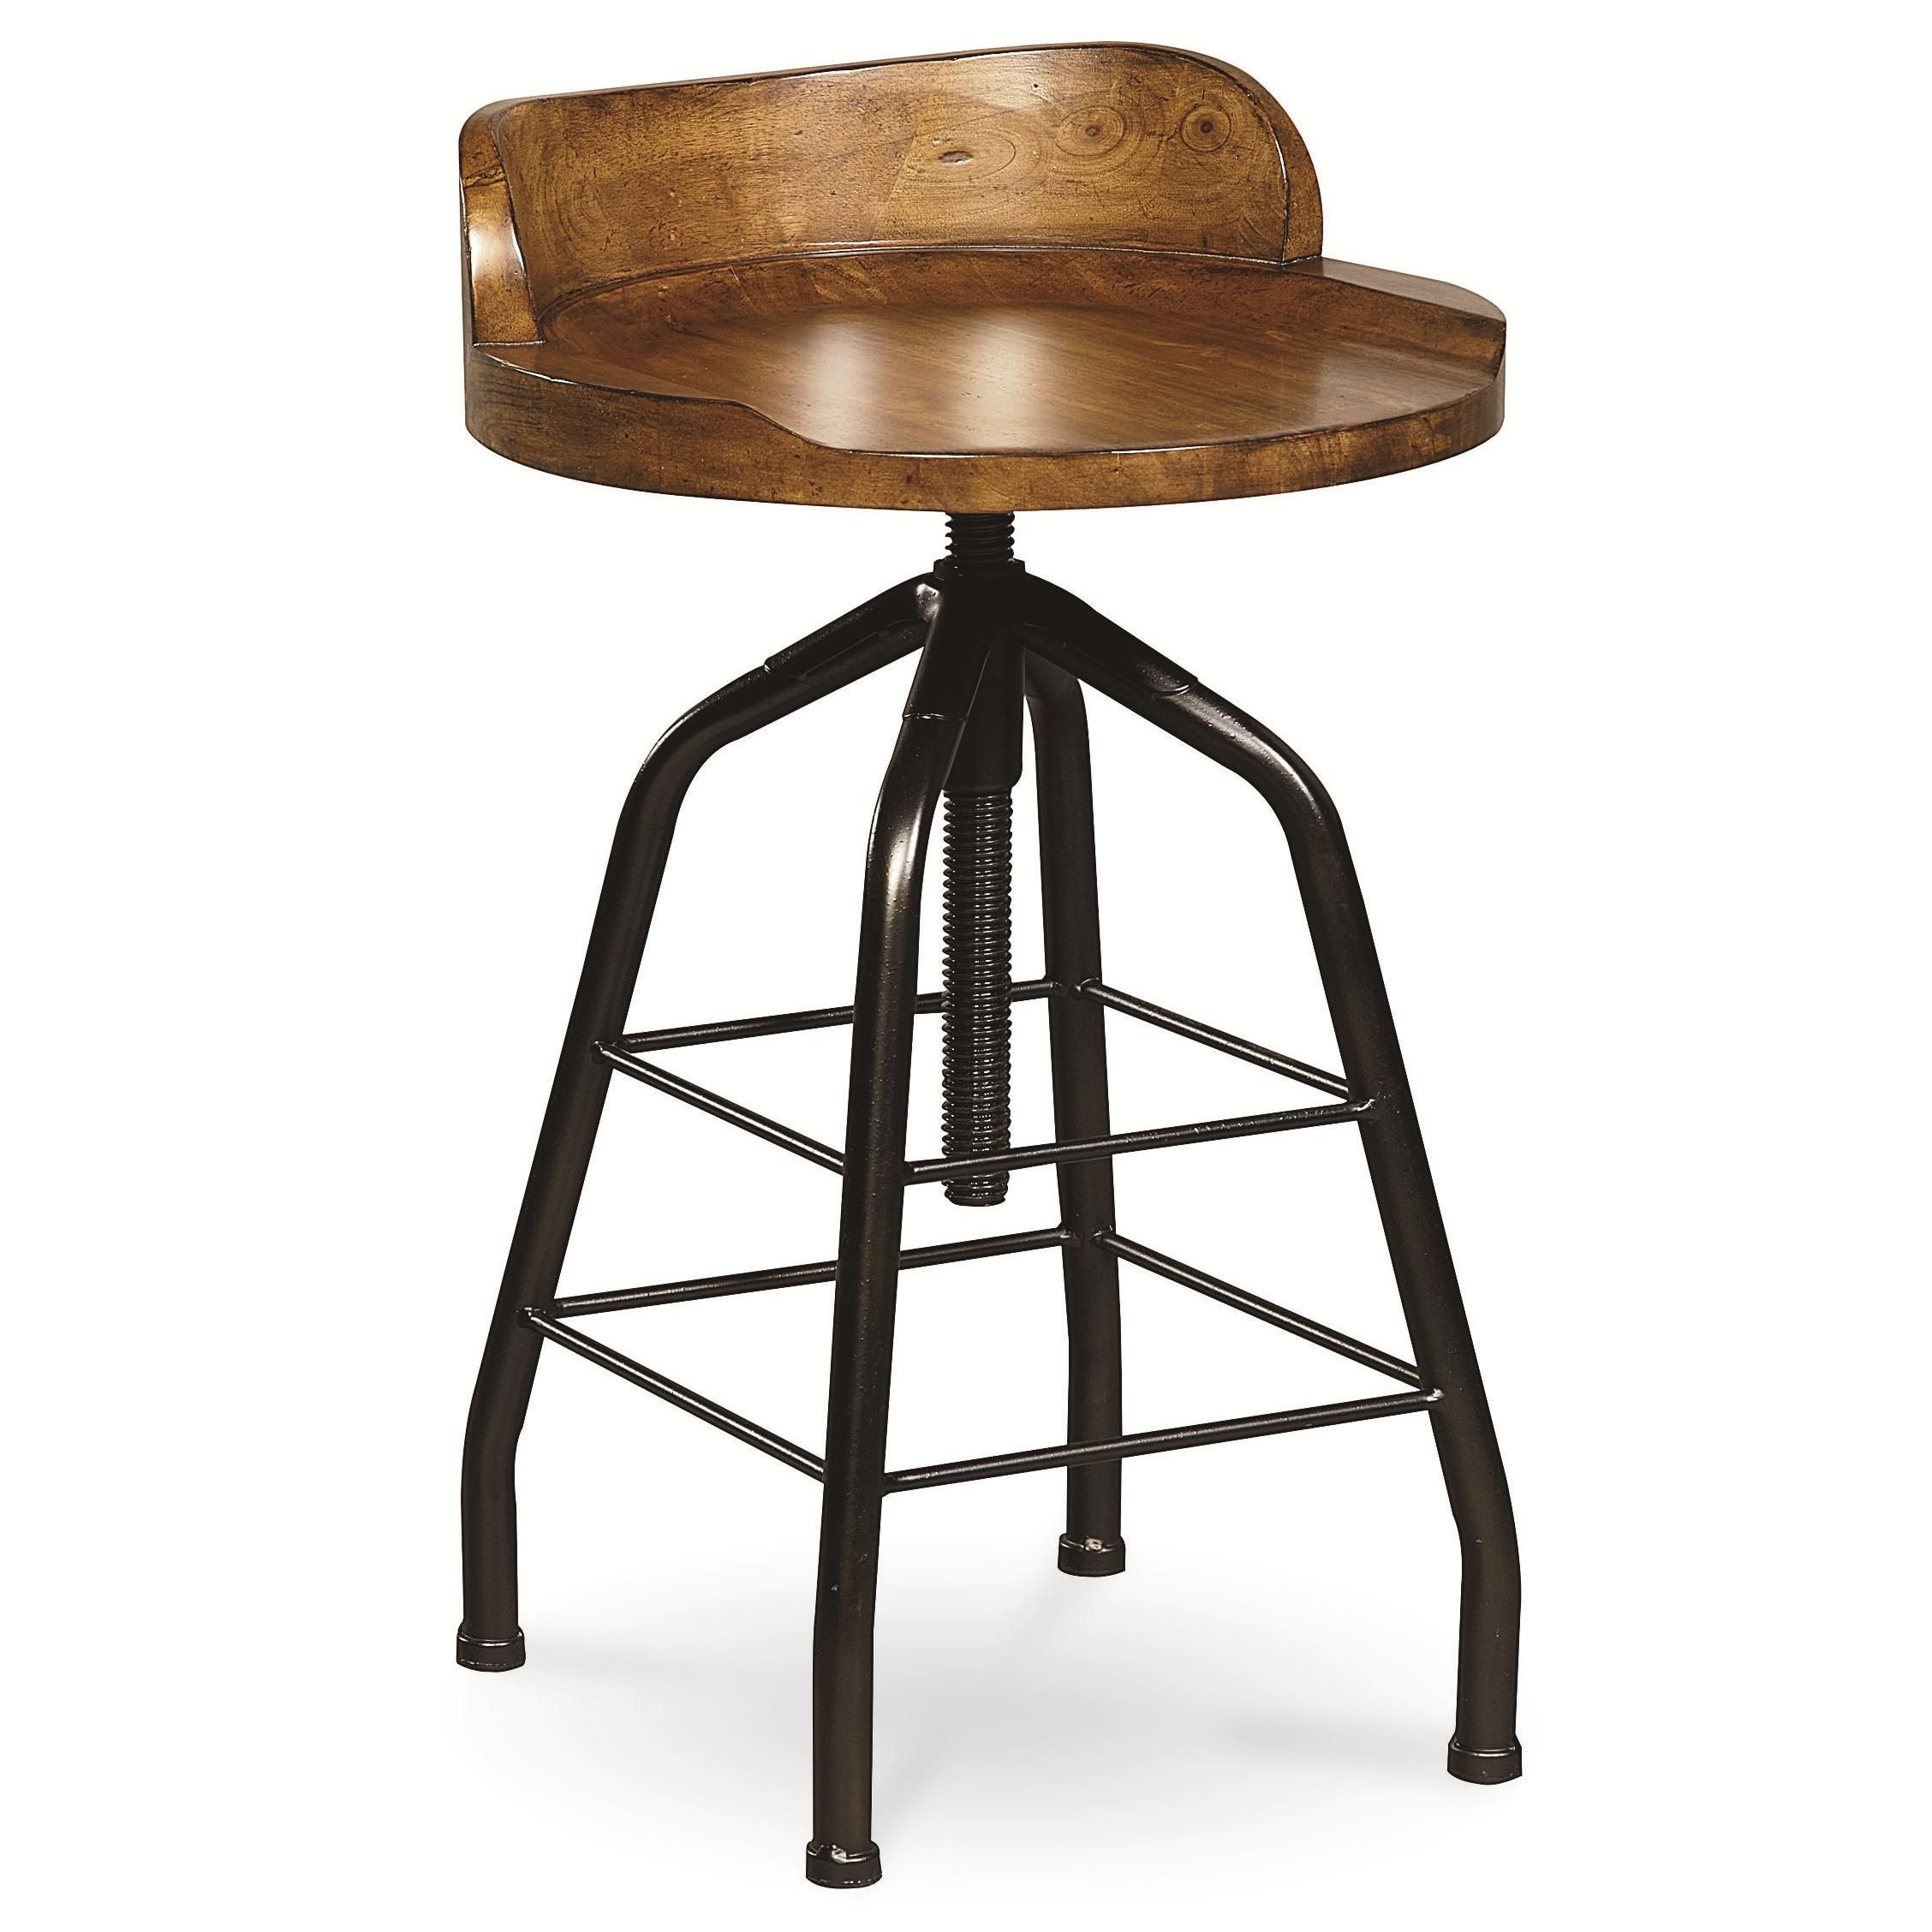 Curated Potter's Stool with Swivel Height Adjustment by O